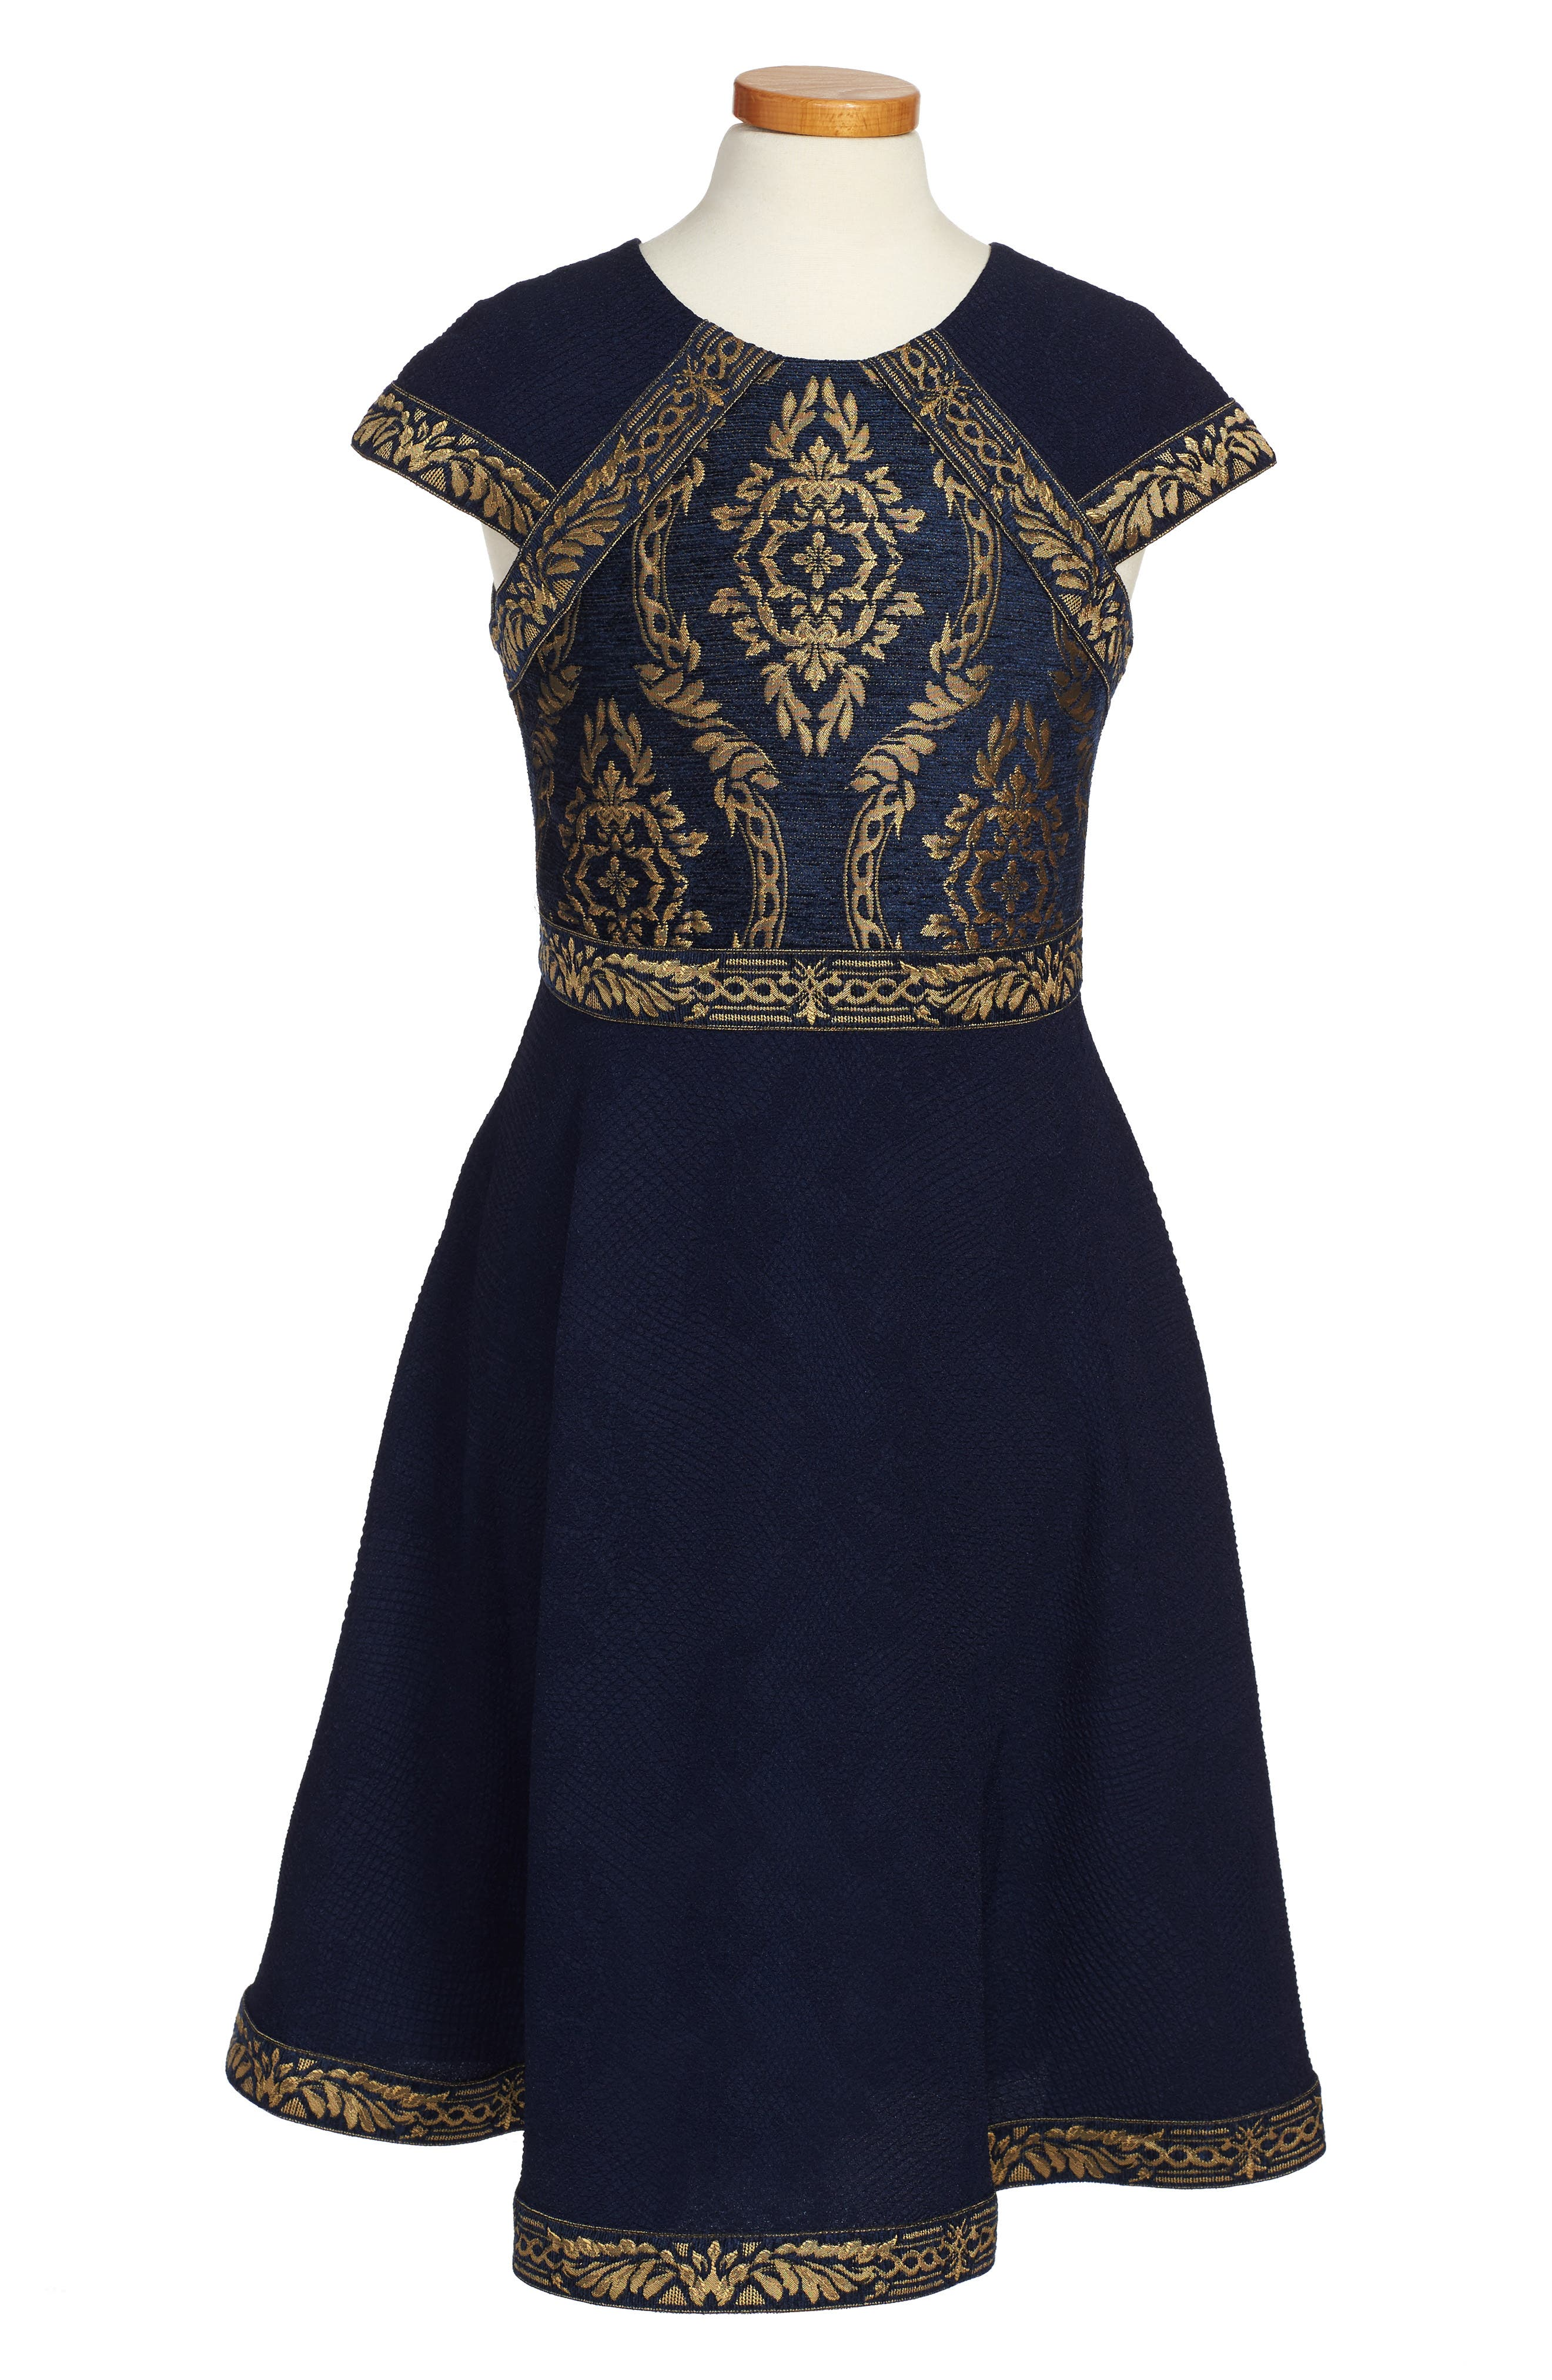 Brocade Embroidery Party Dress,                             Main thumbnail 1, color,                             Navy/ Gold